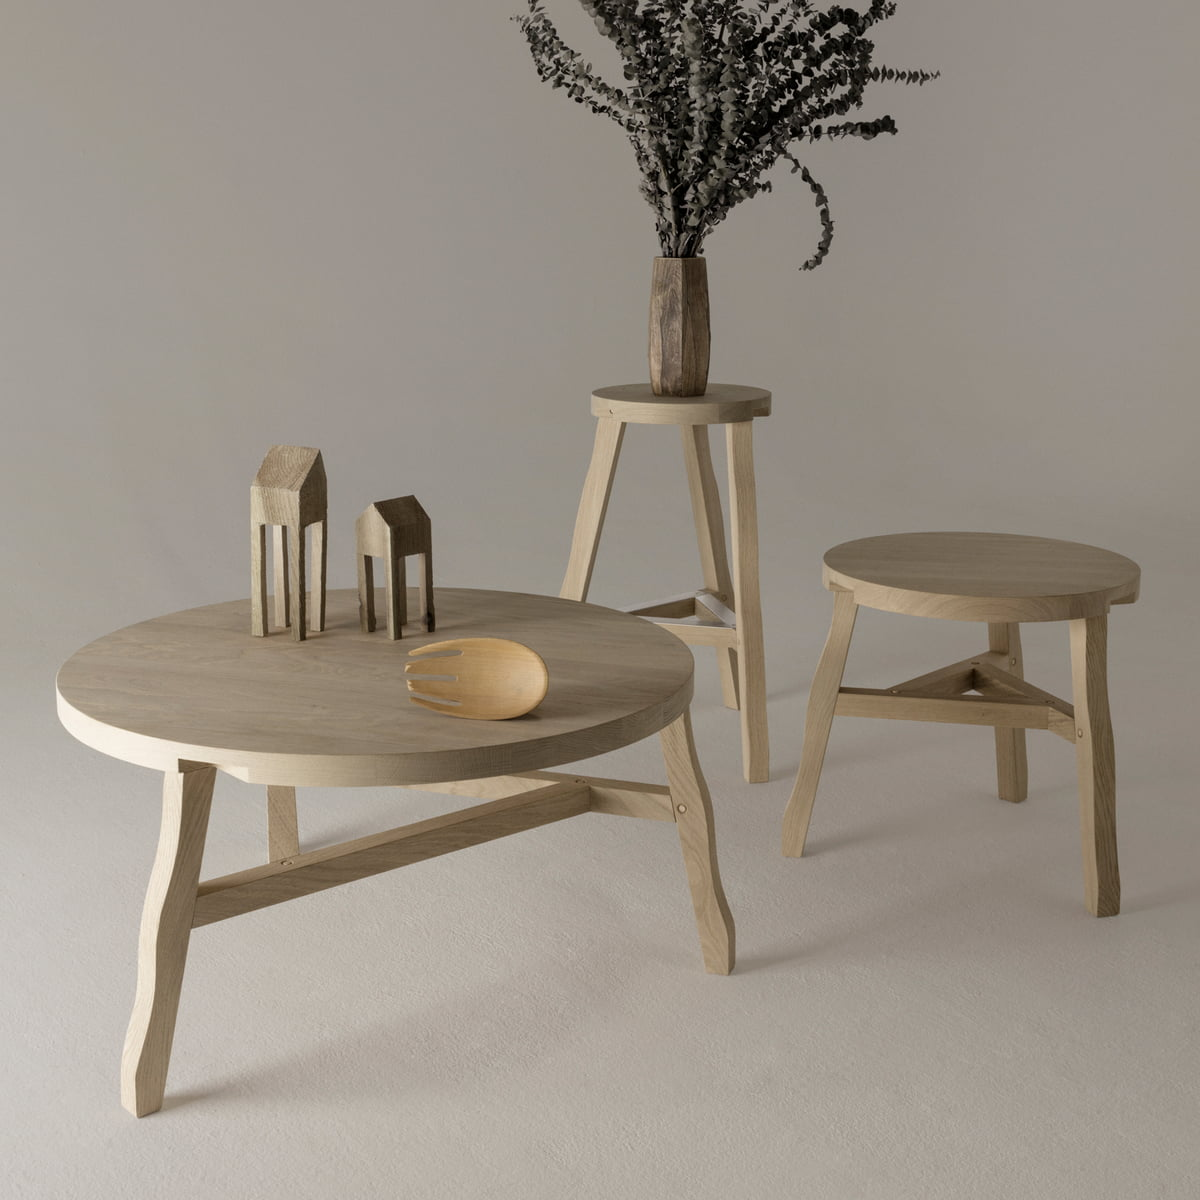 Offcut Coffee Table By Tom Dixon In The Shop - Tom dixon coffee table